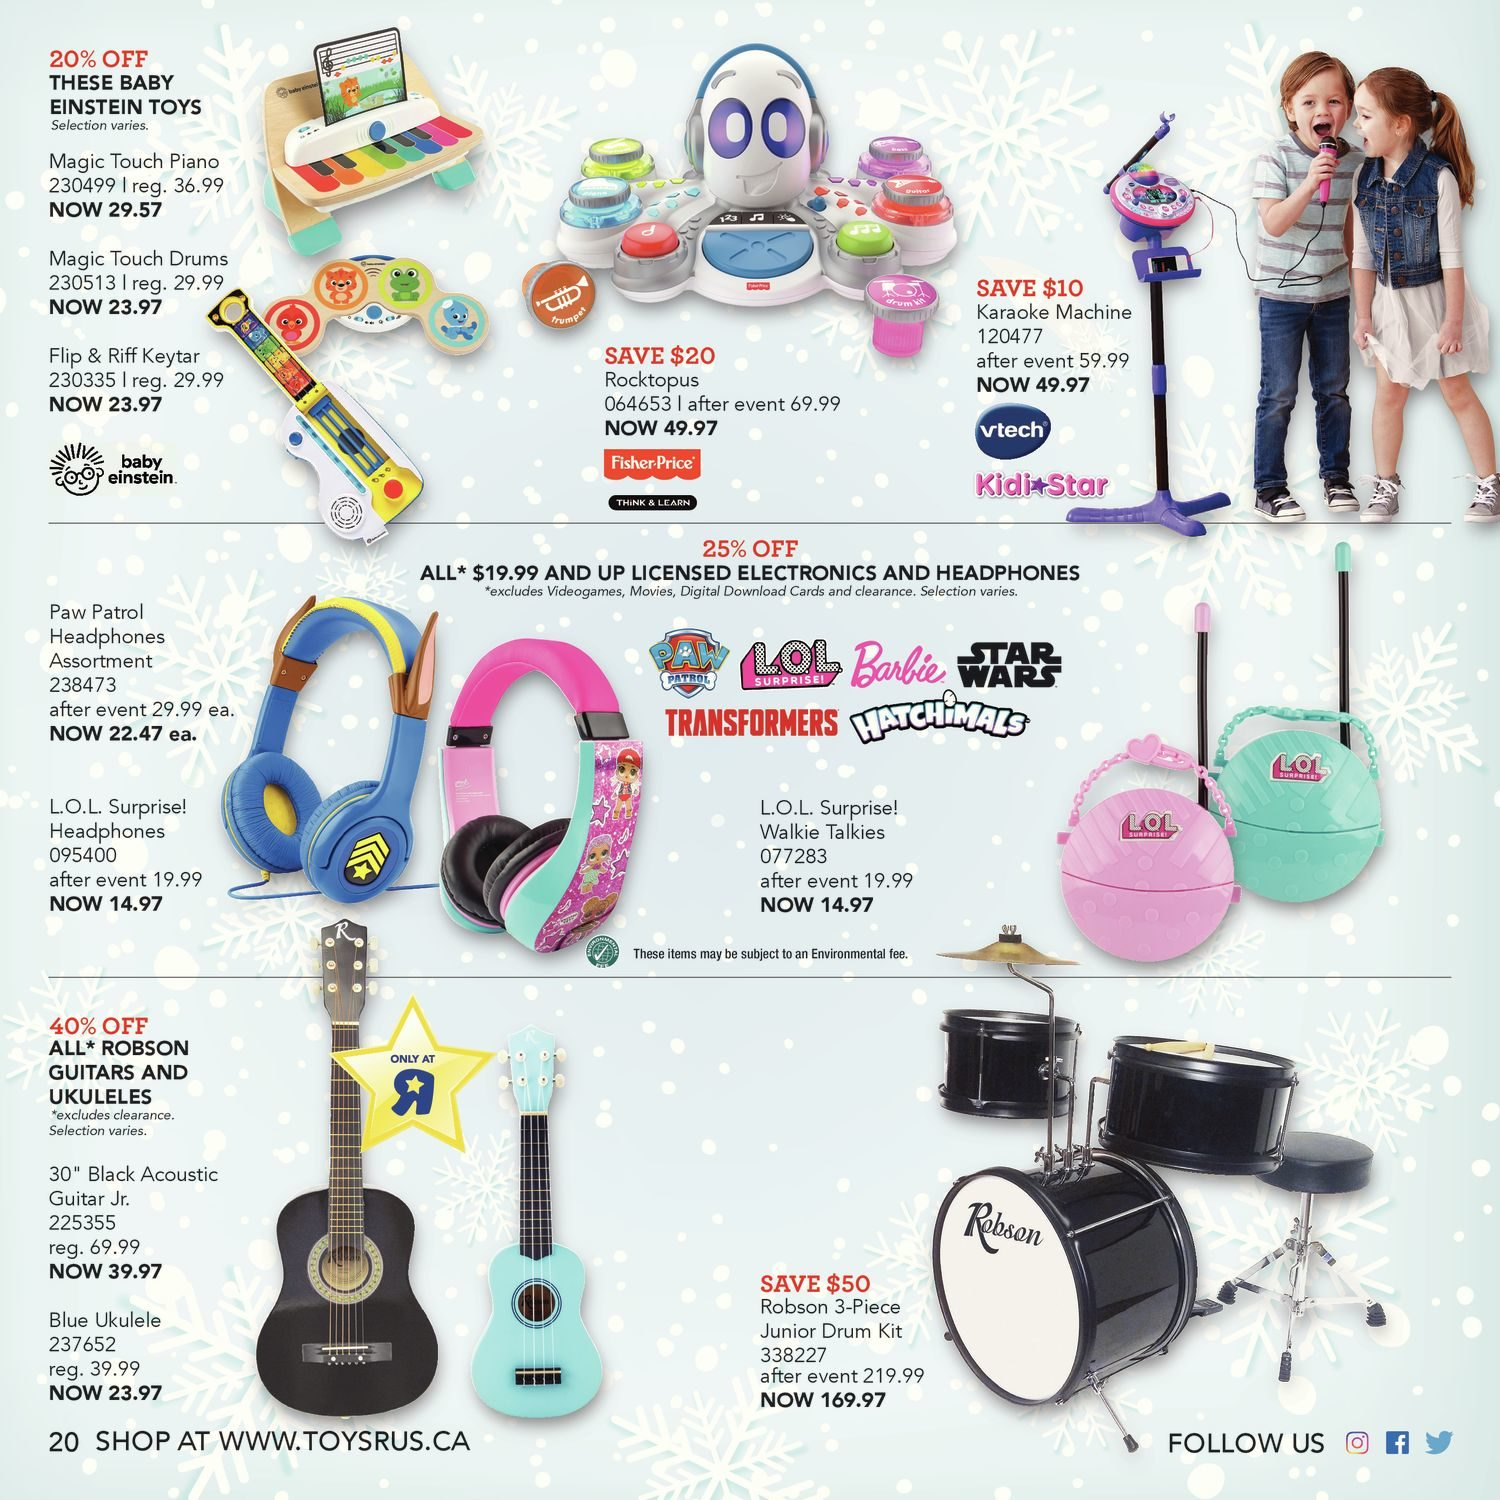 002b62c3f Toys R Us Weekly Flyer - Ultimate Toy Guide 2018 - Nov 2 – 15 ...